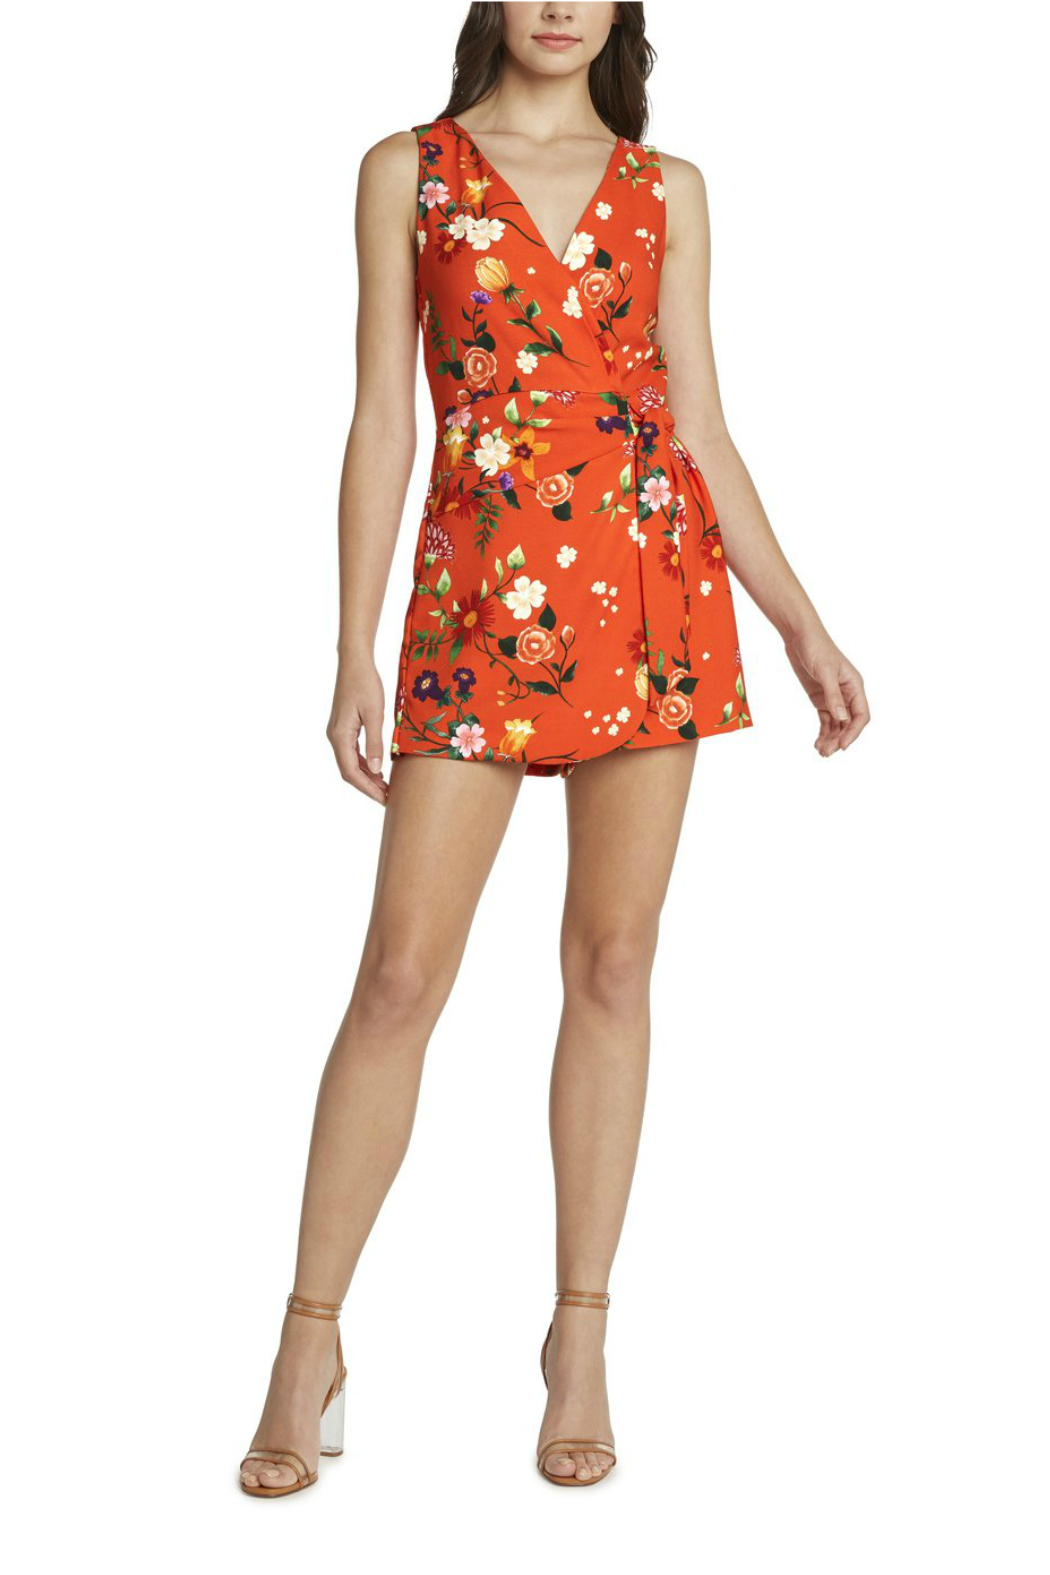 willow and clay Yara Floral Wrap Romper - Main Image